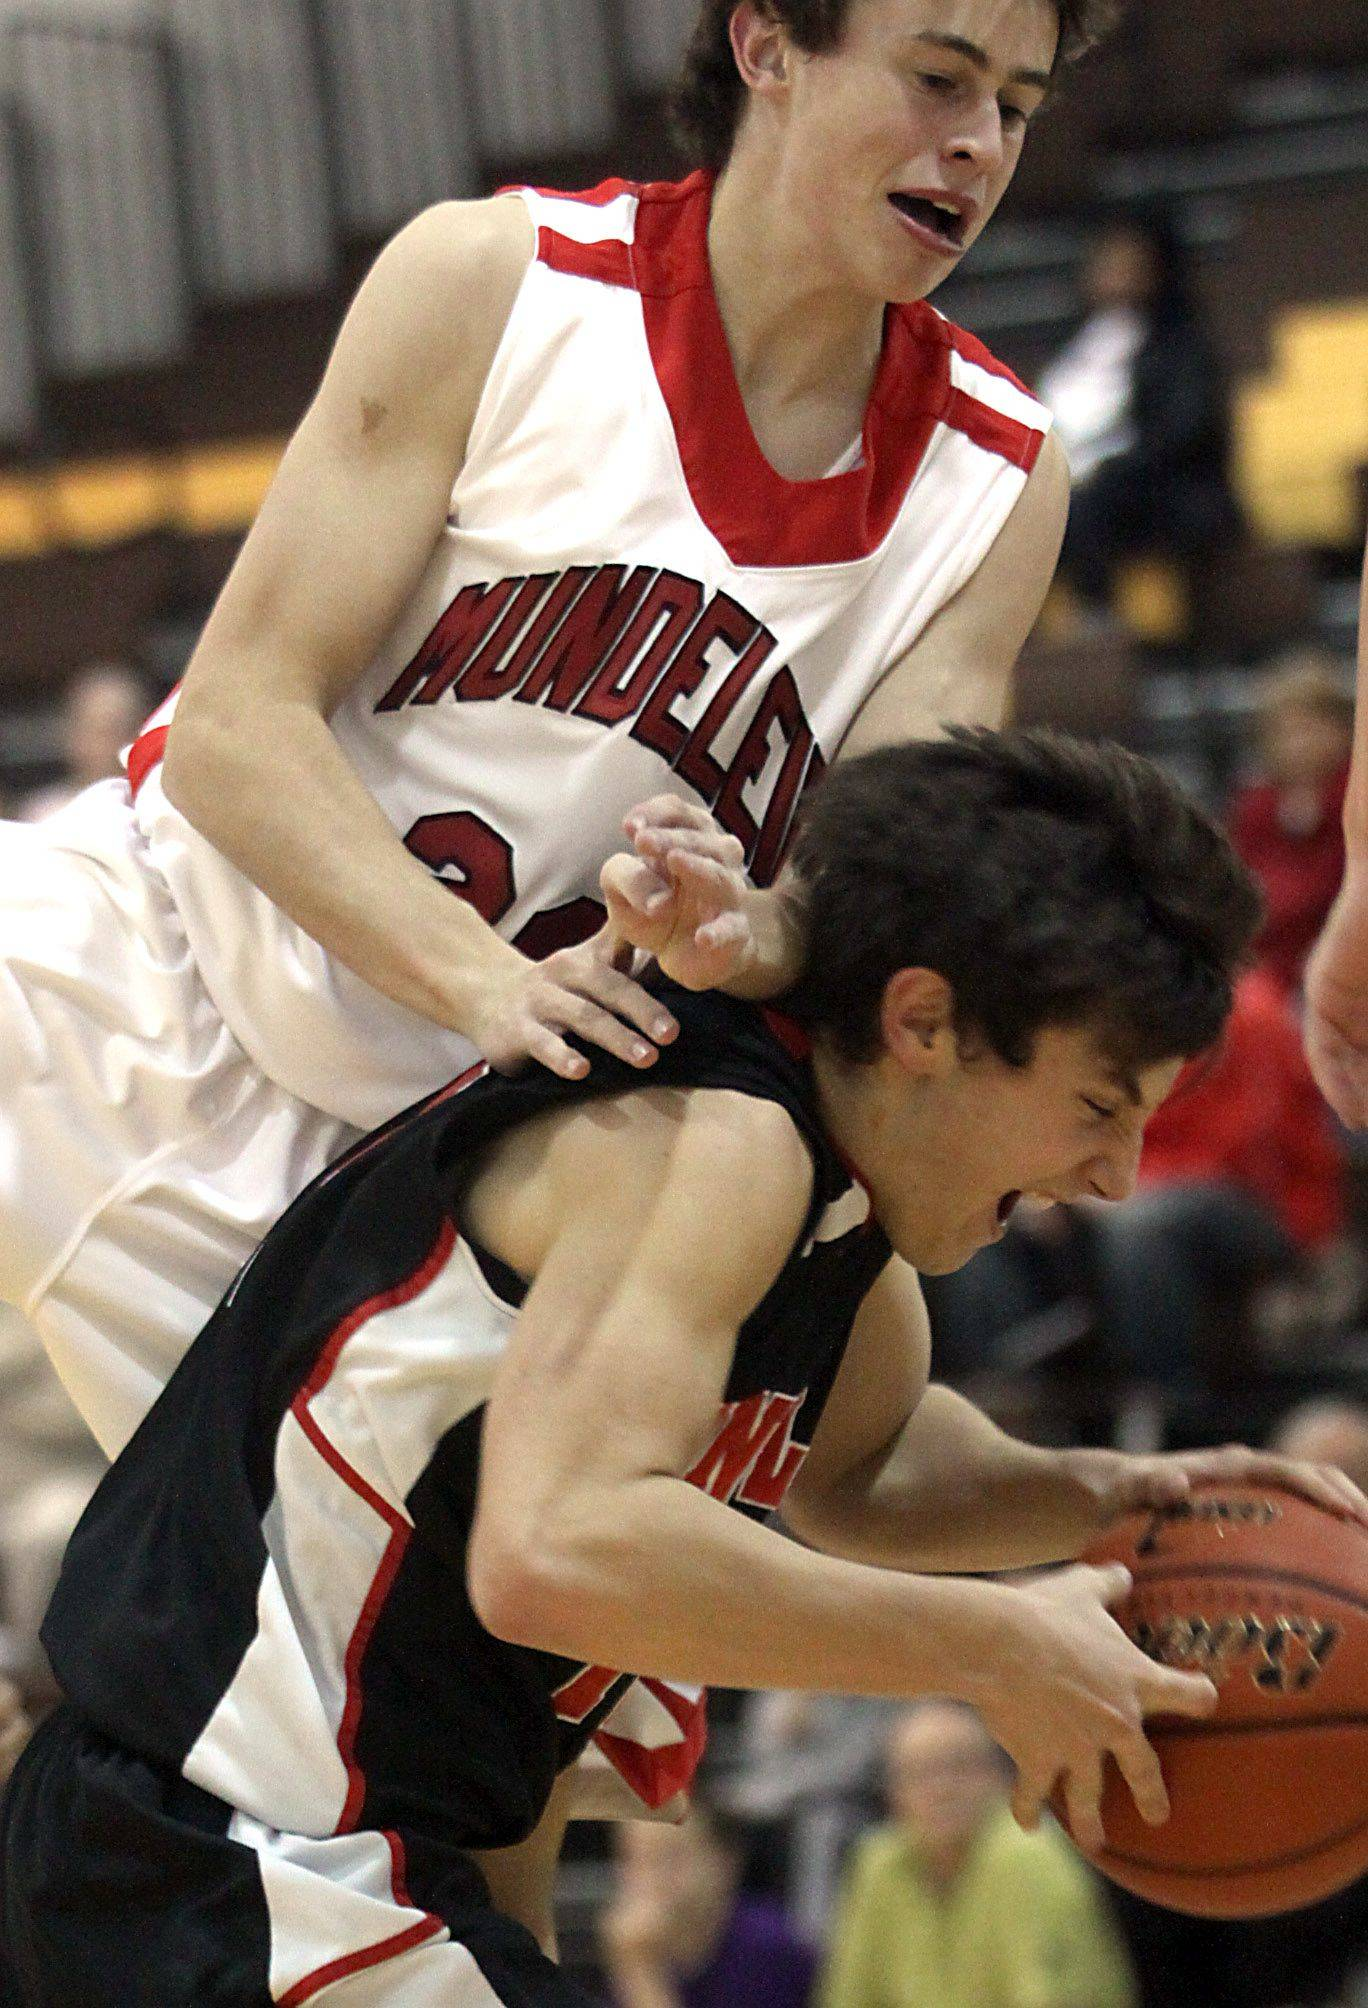 Jake Dachman of Huntley, bottom, tries to keep a handle on the basketball as Nate Brune of Mundelein plays defense during the title game of the Jacobs Holiday Classic Boys Basketball Tournament in Algonquin on Thursday night.